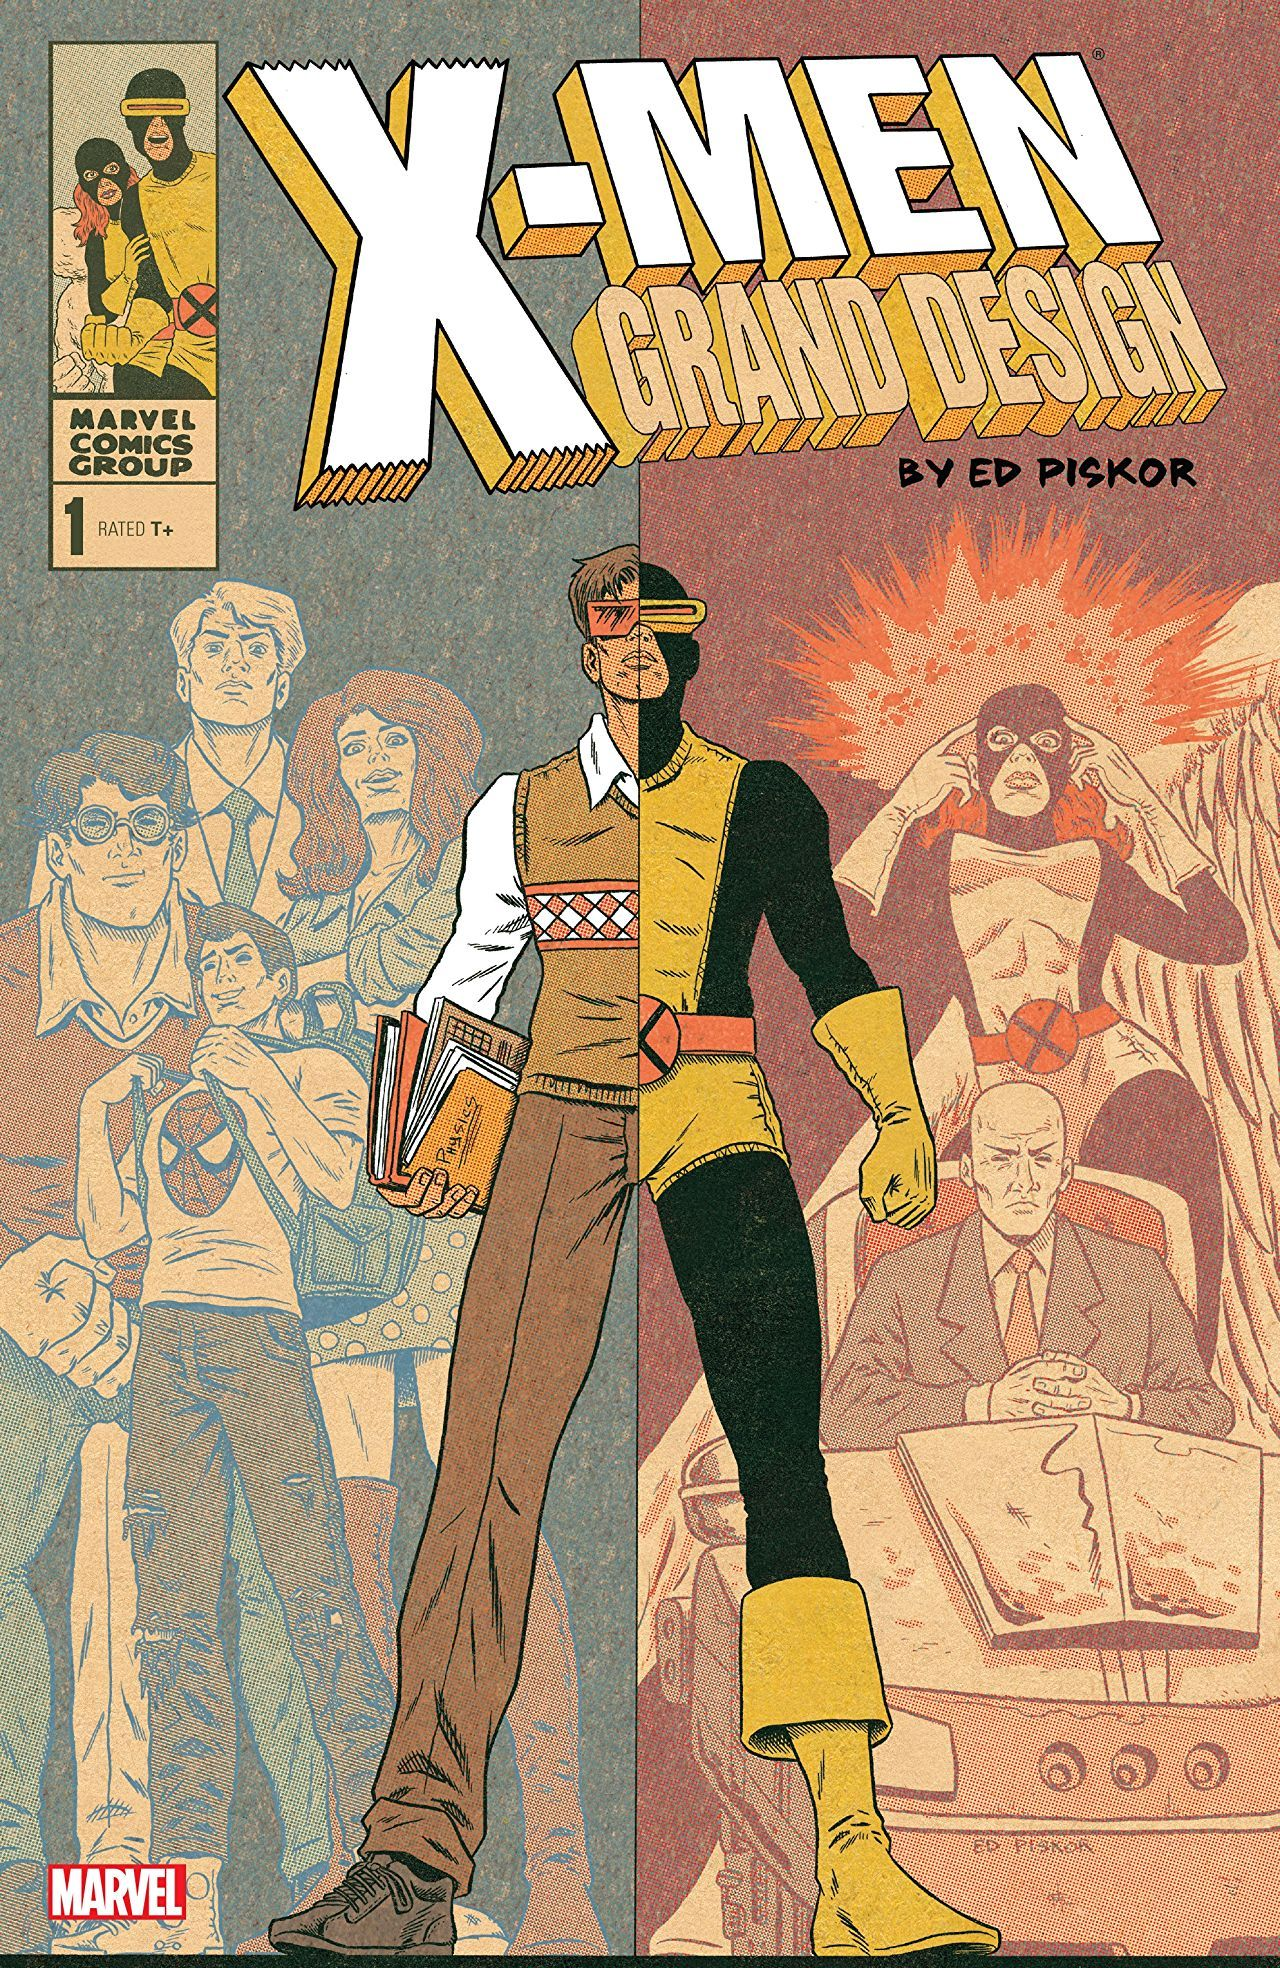 X Men Grand Design 2017 2018 1 Of 2 Marvel Marvel Marvelofficial Xmen Cover Artist Ed Piskor Release Date 10 4 2017 Grand Designs Comics X Men